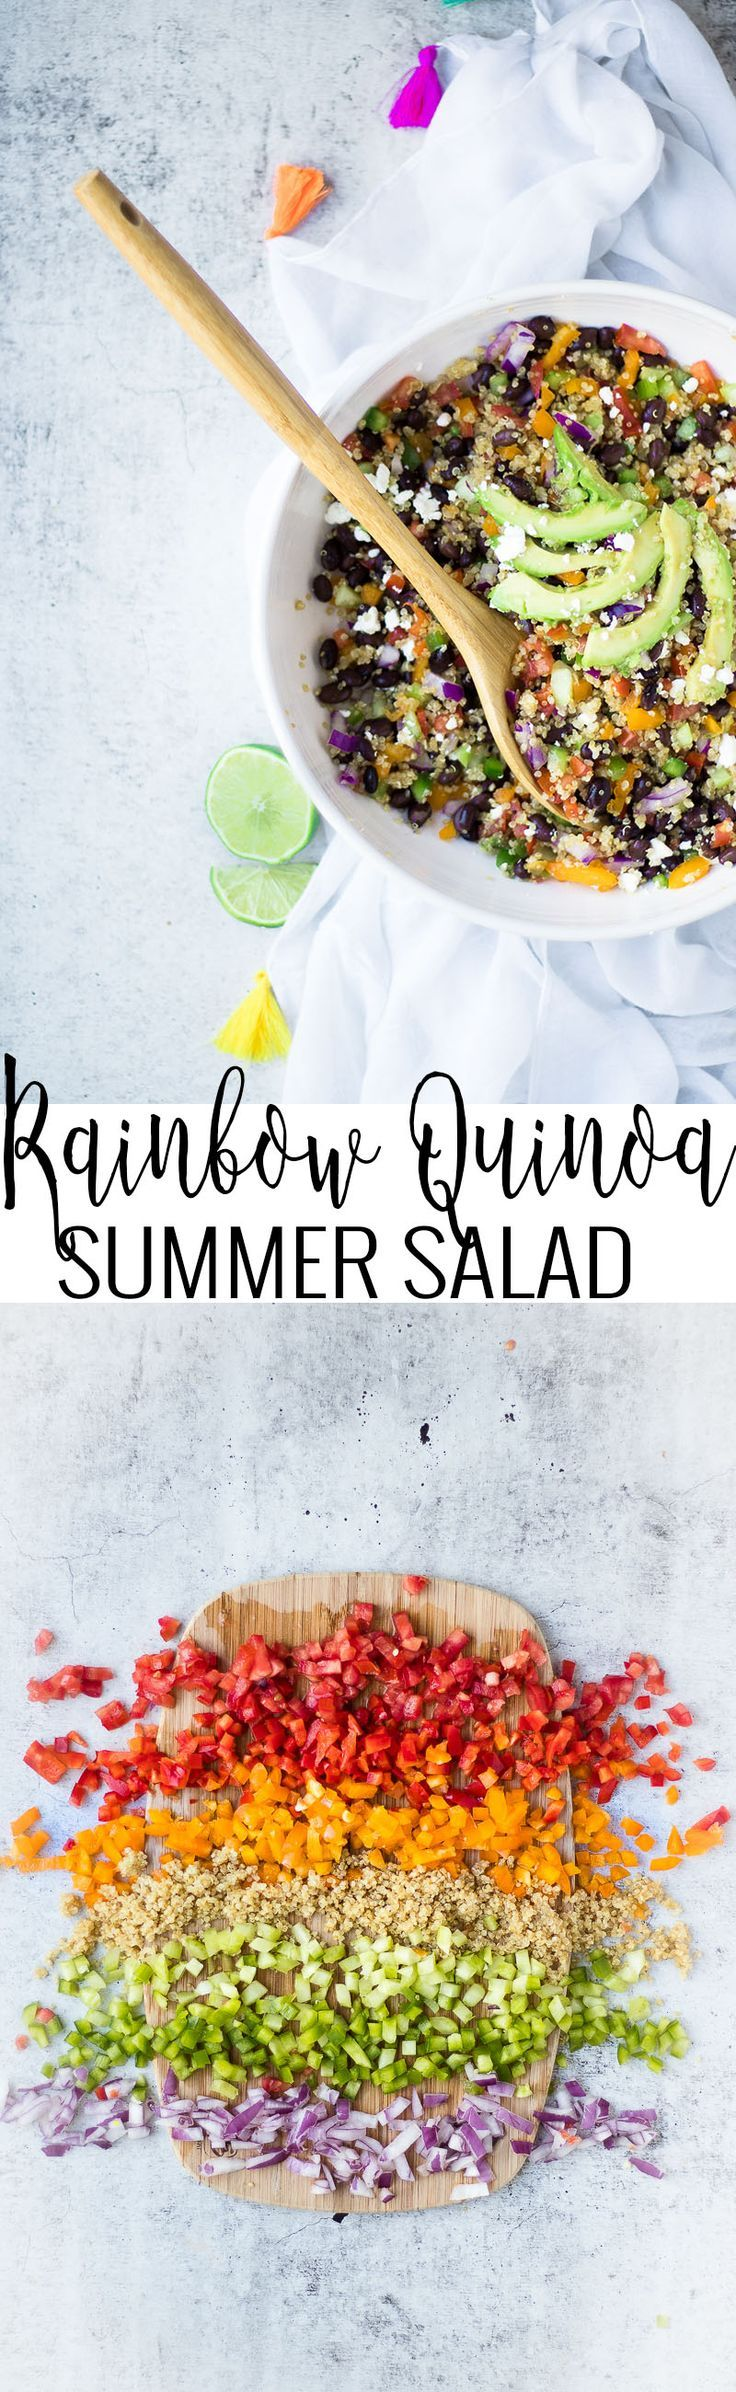 Rainbow Quinoa Salad | healthy dinner recipes | healthy salad recipes | salad recipe ideas | recipes using quinoa | how to cook quinoa | quinoa salad recipes | healthy lunch recipes | recipes using fresh vegetables | healthy summer salad | summer recipe ideas || Oh So Delicioso